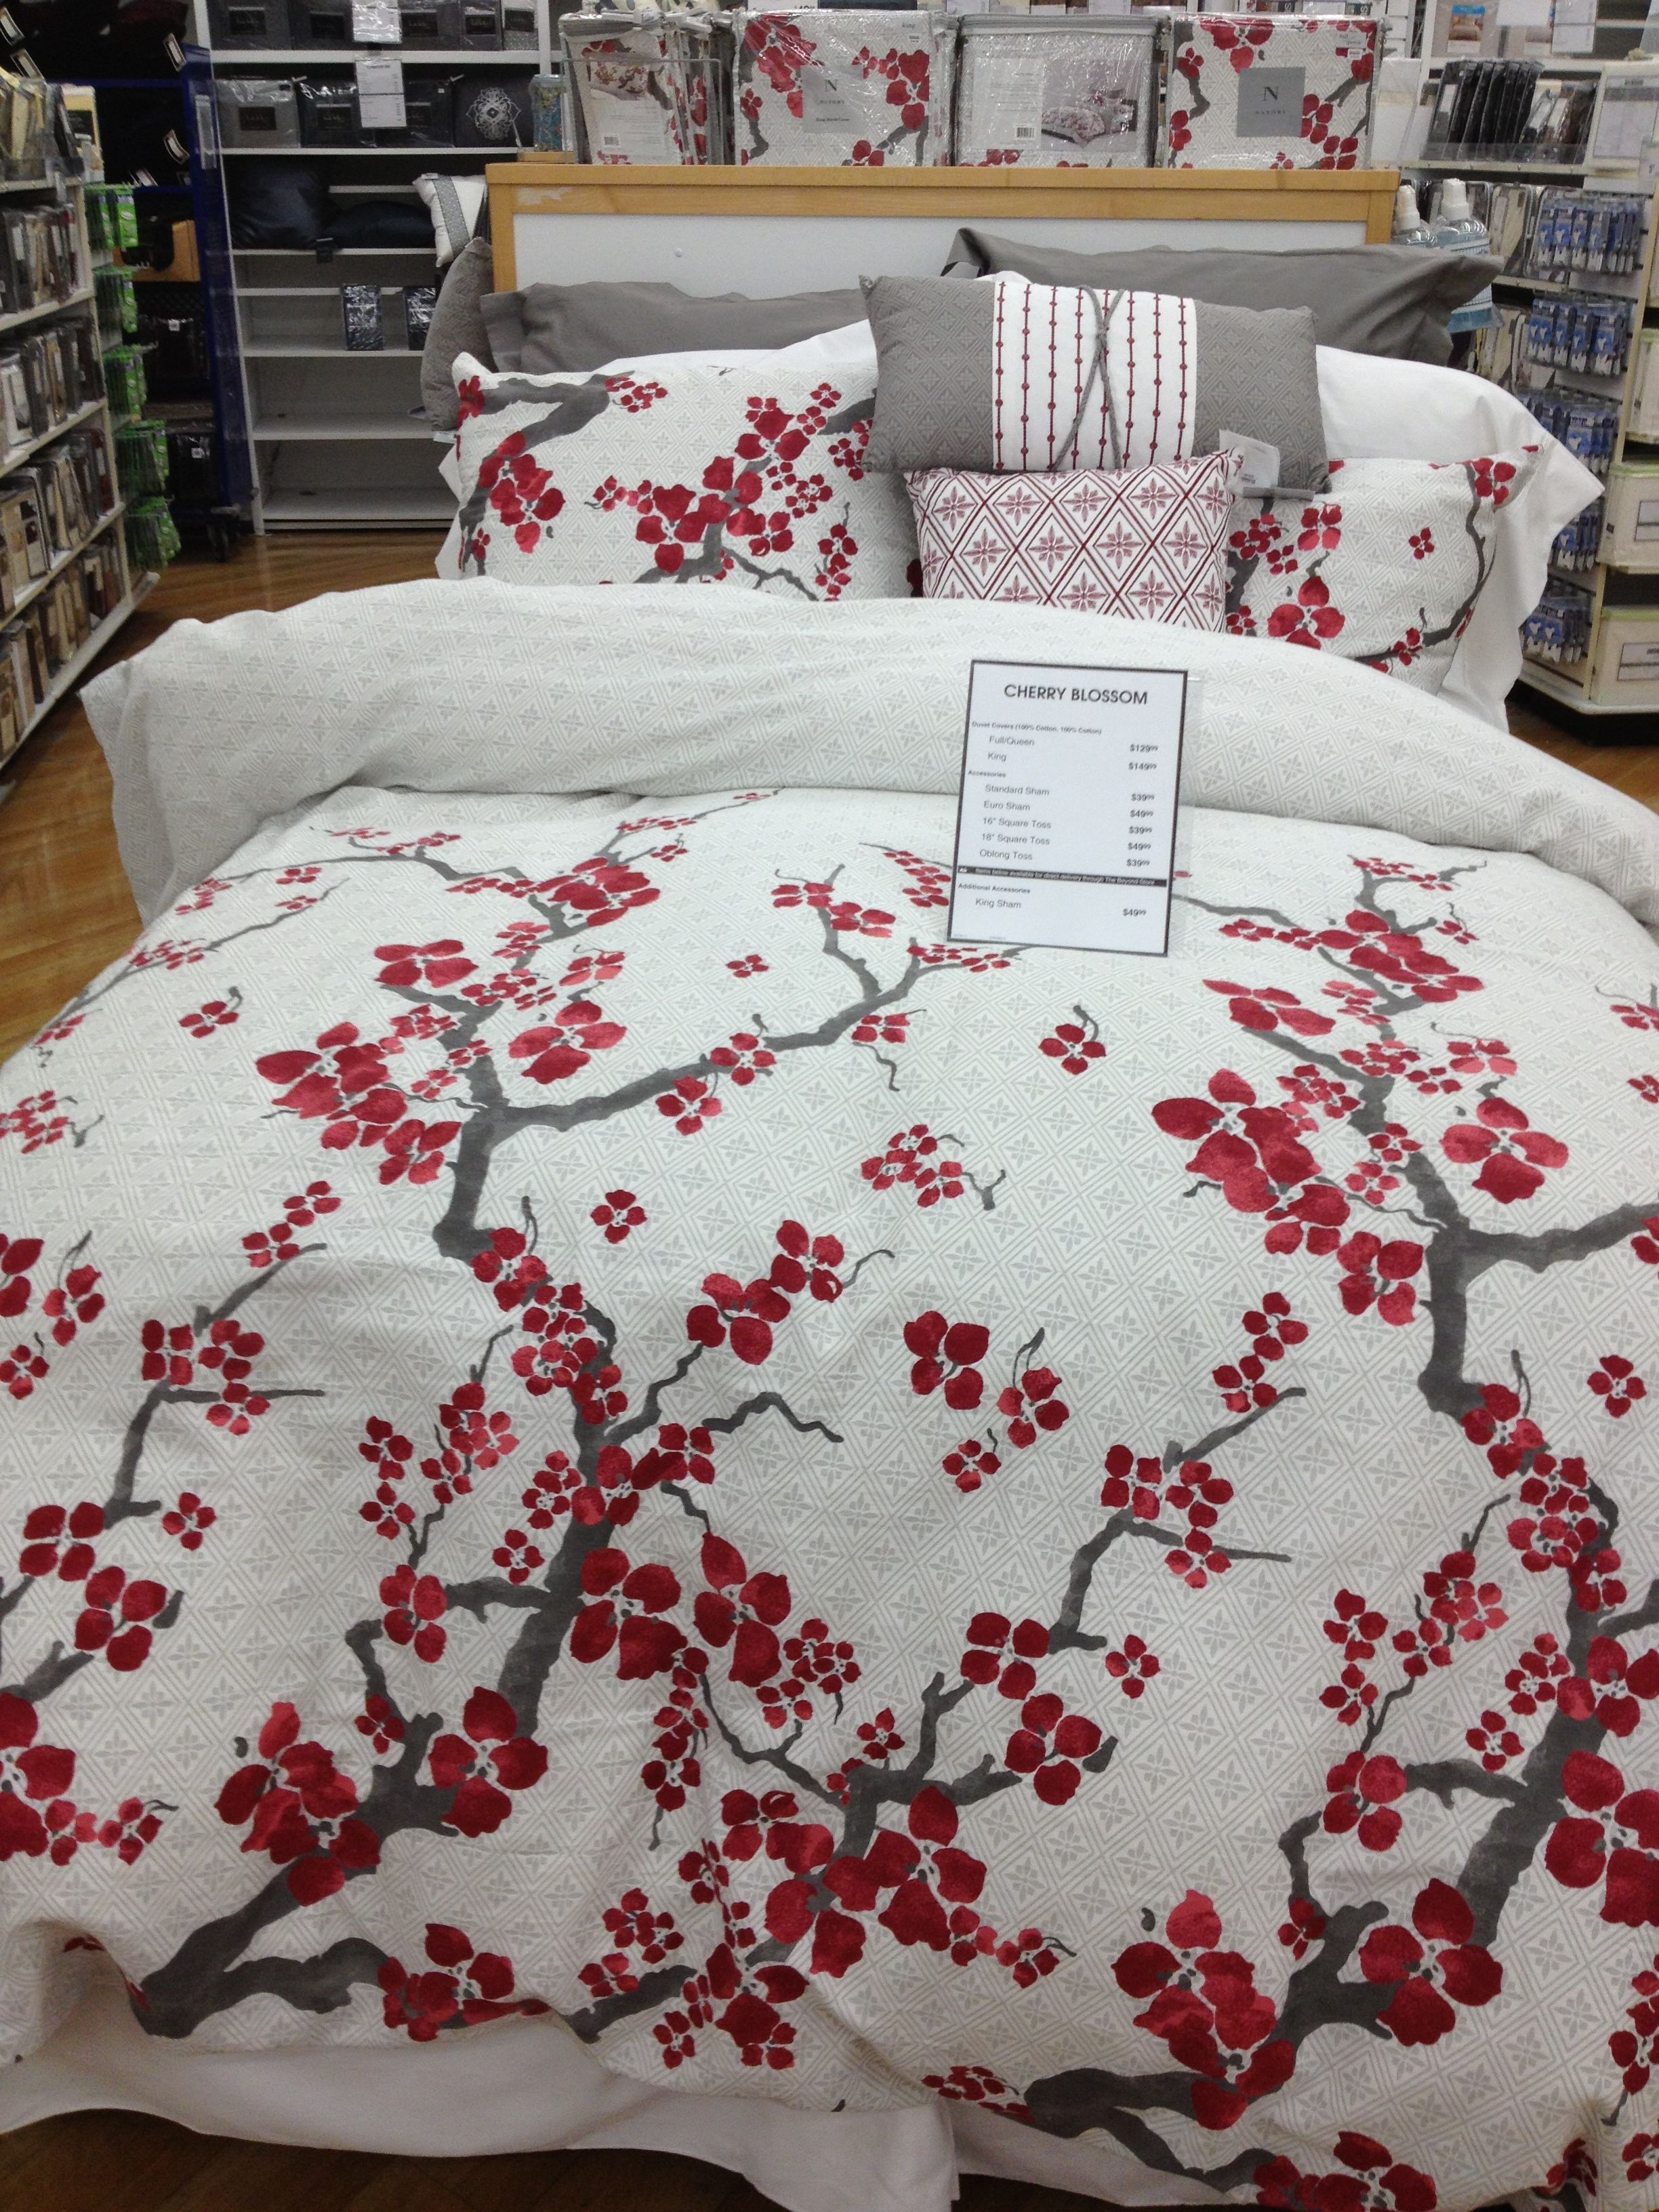 Cherry Blossom Duvet/Comforter Set by N Natori in white, red grey as seen  here at Bed Bath Beyond. 'Want sooooooo badly.